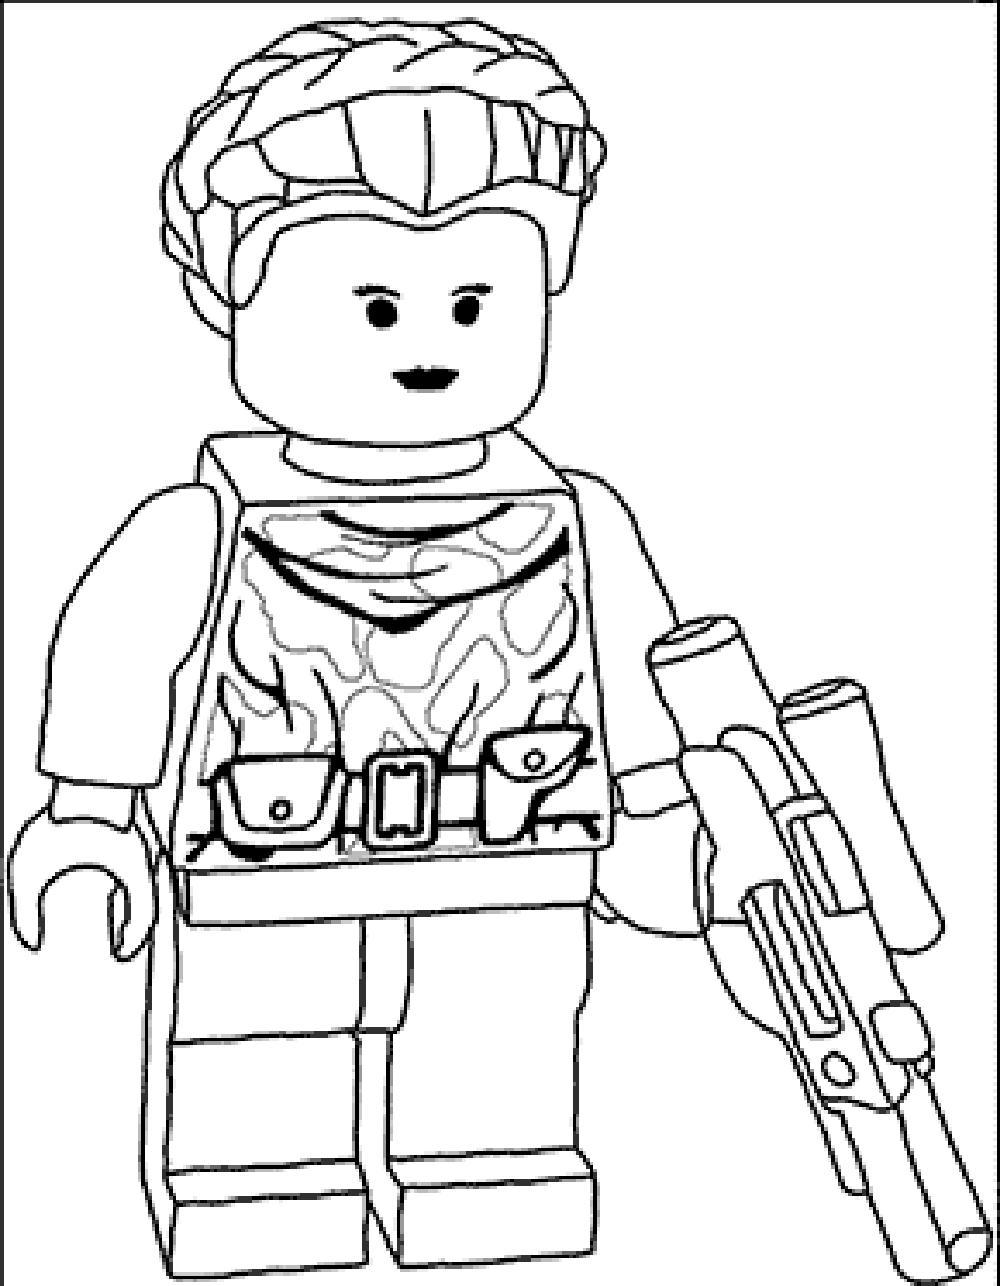 lego star wars coloring book lego star wars yoda coloring pages get coloring pages book star wars coloring lego